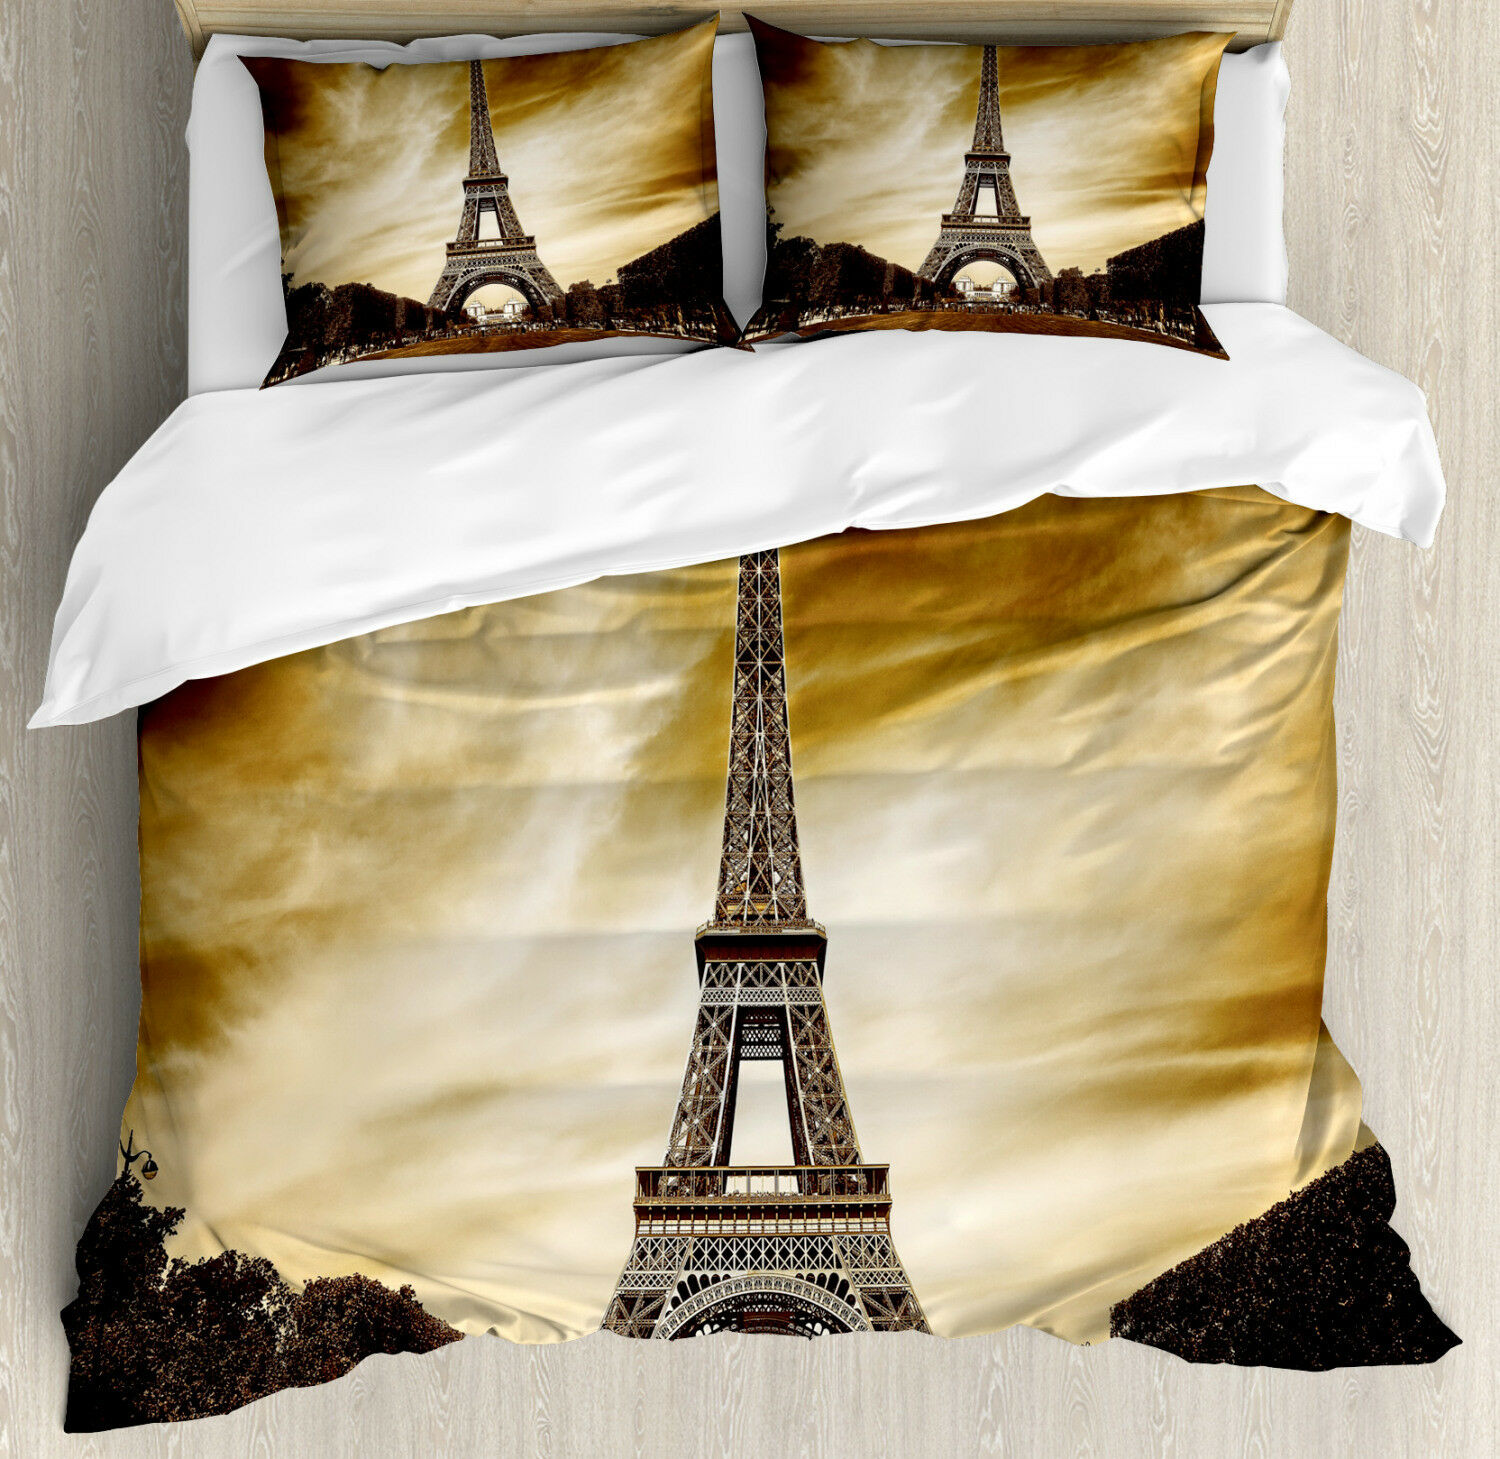 Eiffel Duvet Cover Set with Pillow Shams Paris France Brown Skies Print